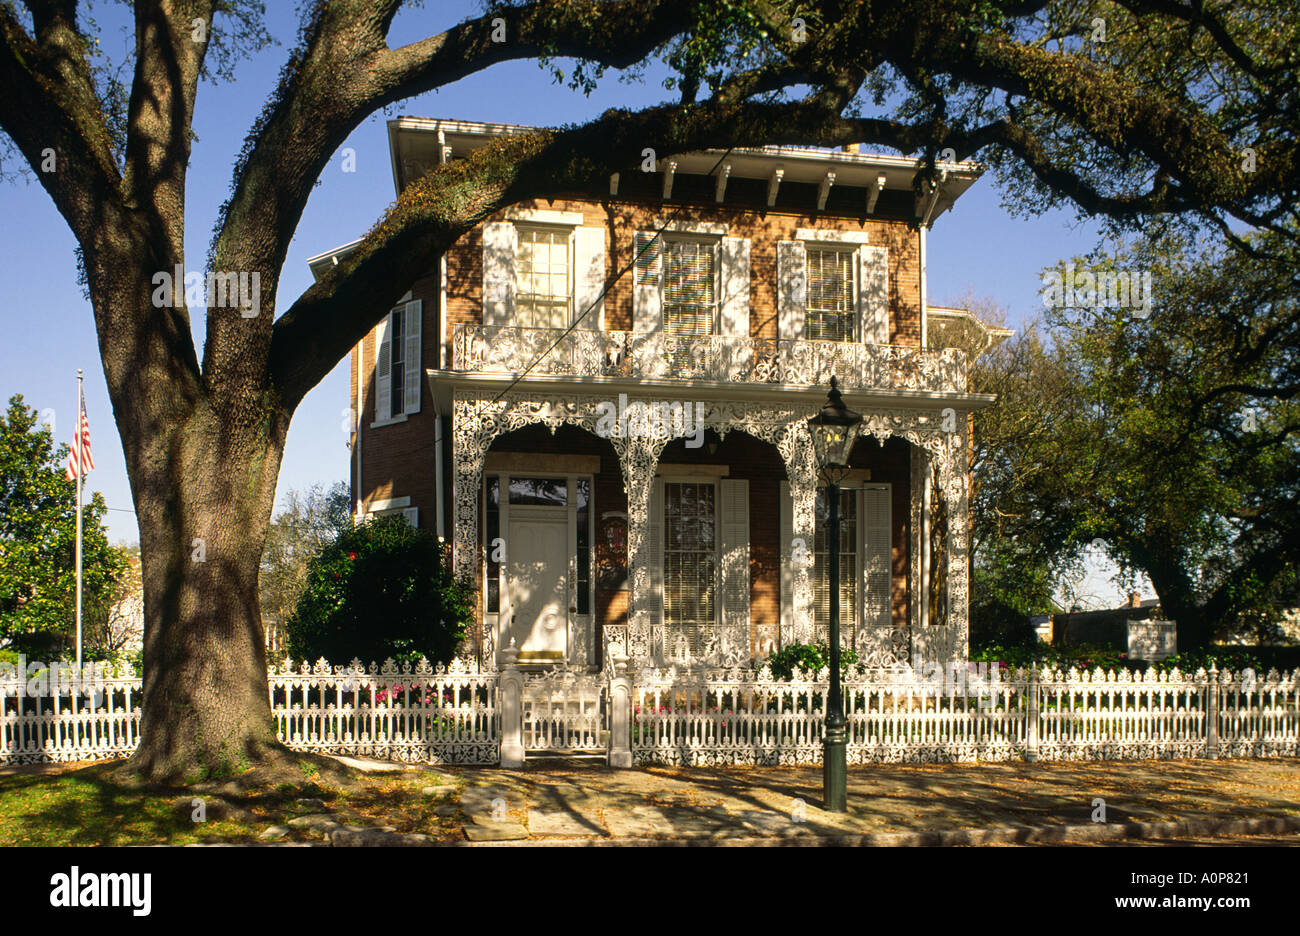 The Richards DAR House circa 1860 in town of Mobile, Alabama, USA. Now a museum run by the Daughters of the American Revolution - Stock Image